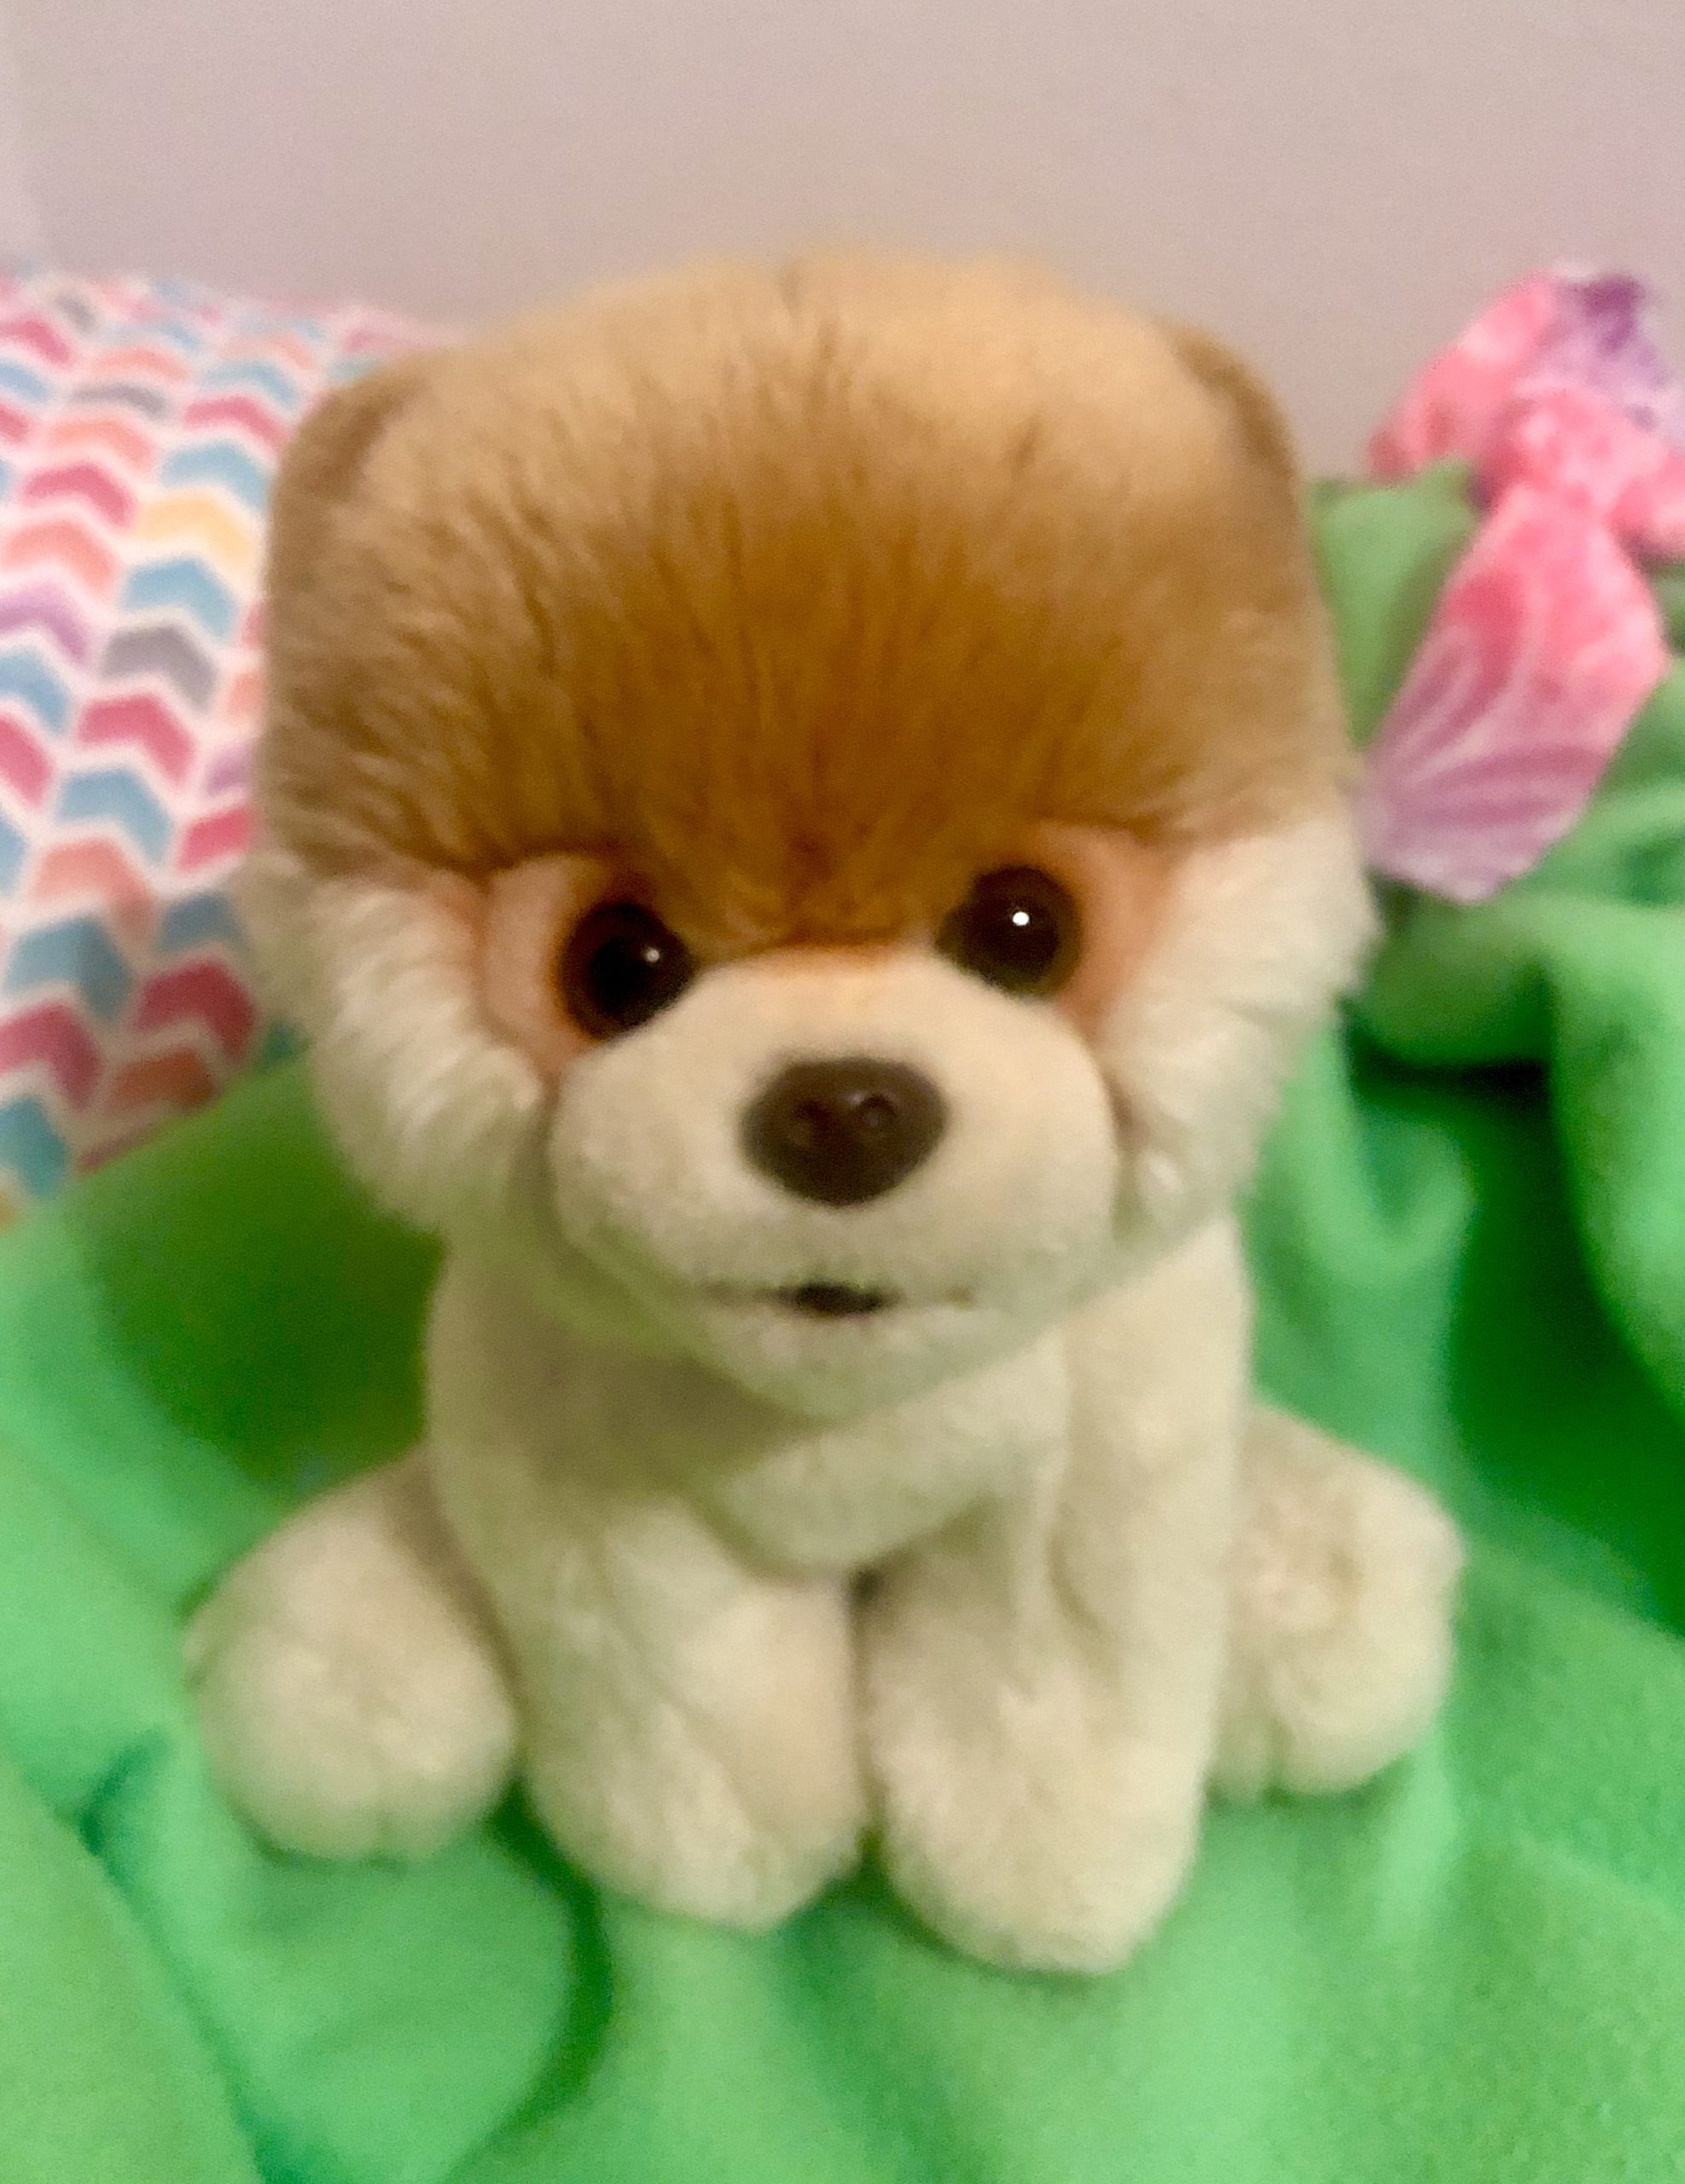 A Pomeranian dog stuffed animal named Buddy sitting on a lime green blanket. It's from the Case of the Stolen Stuffy- a mystery story for kids.